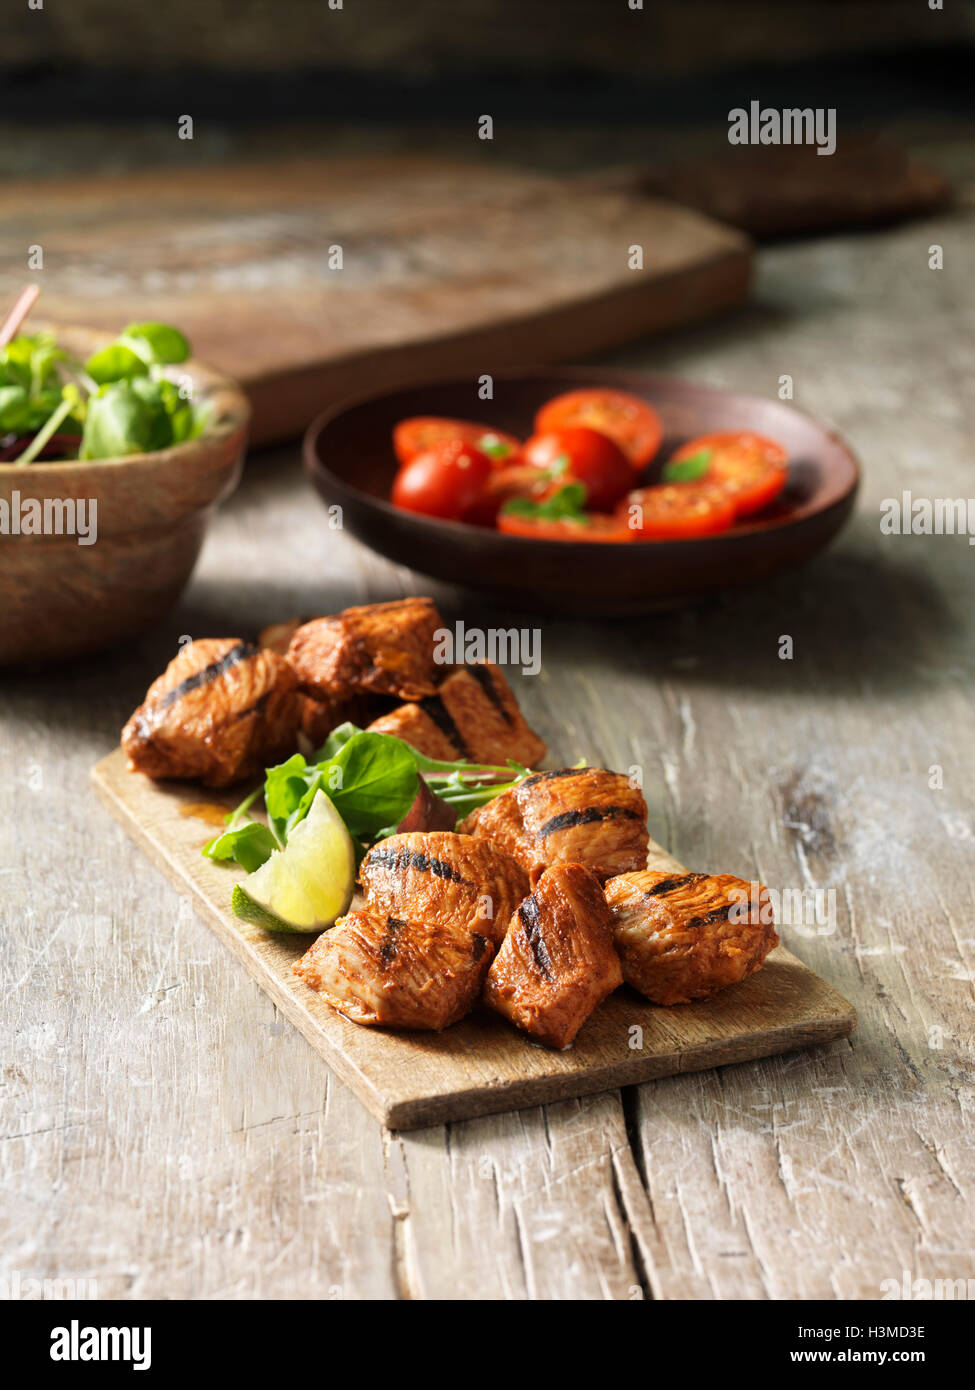 Hickory smoked bbq chicken, cherry tomatoes, fresh lime slice, green herbs - Stock Image